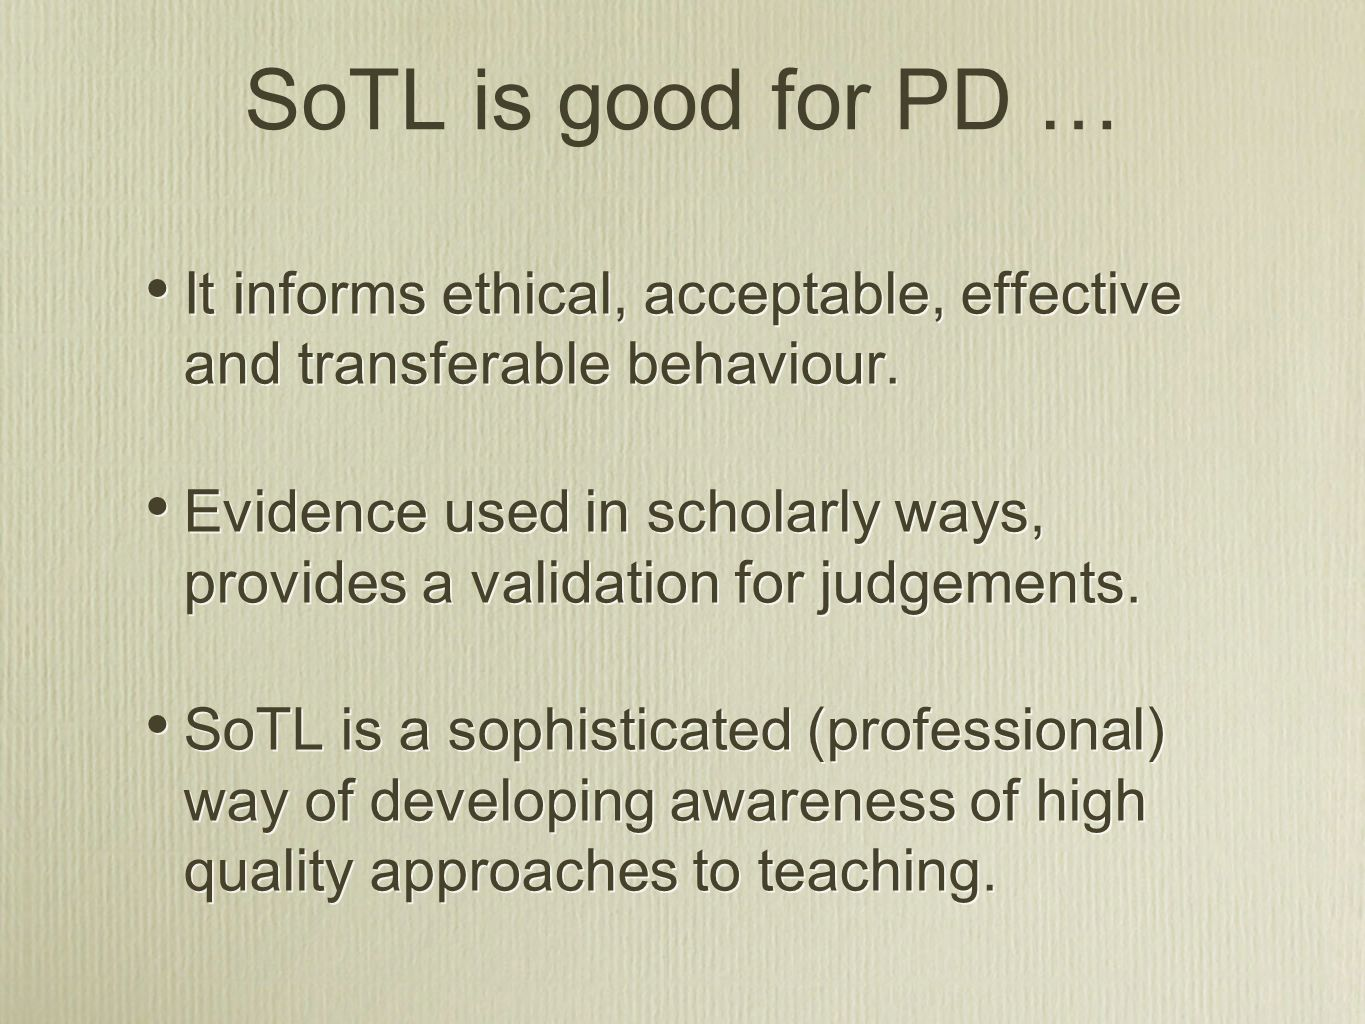 It informs ethical, acceptable, effective and transferable behaviour. Evidence used in scholarly ways, provides a validation for judgements. SoTL is a